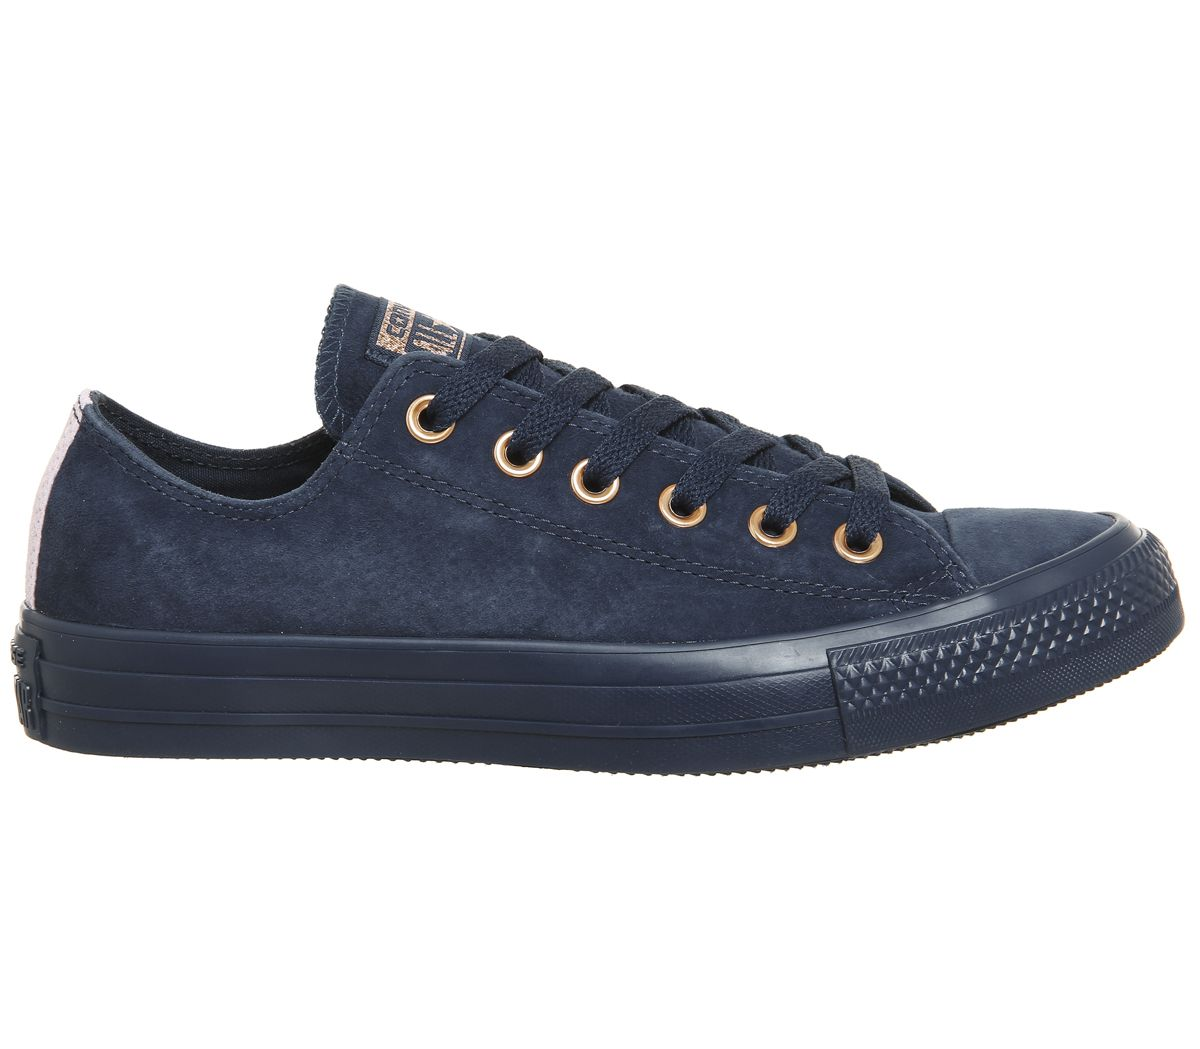 a006da5d628a Converse All Star Low Leather Navy Cherry Blossom Exclusive - Hers ...